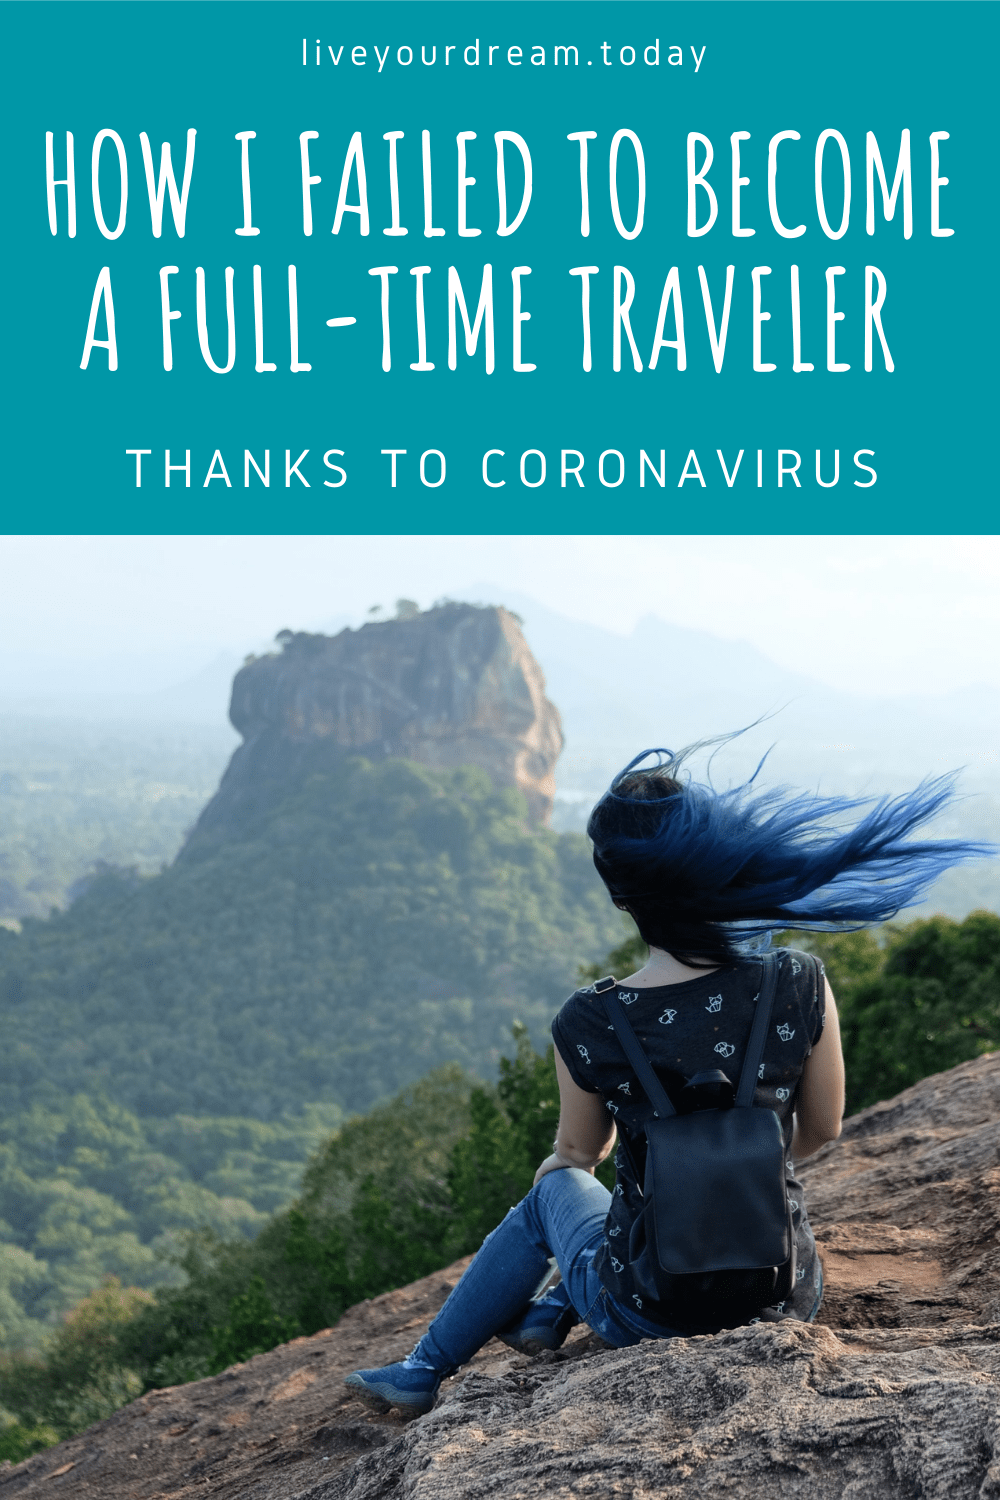 how i failed to become a full-time traveler